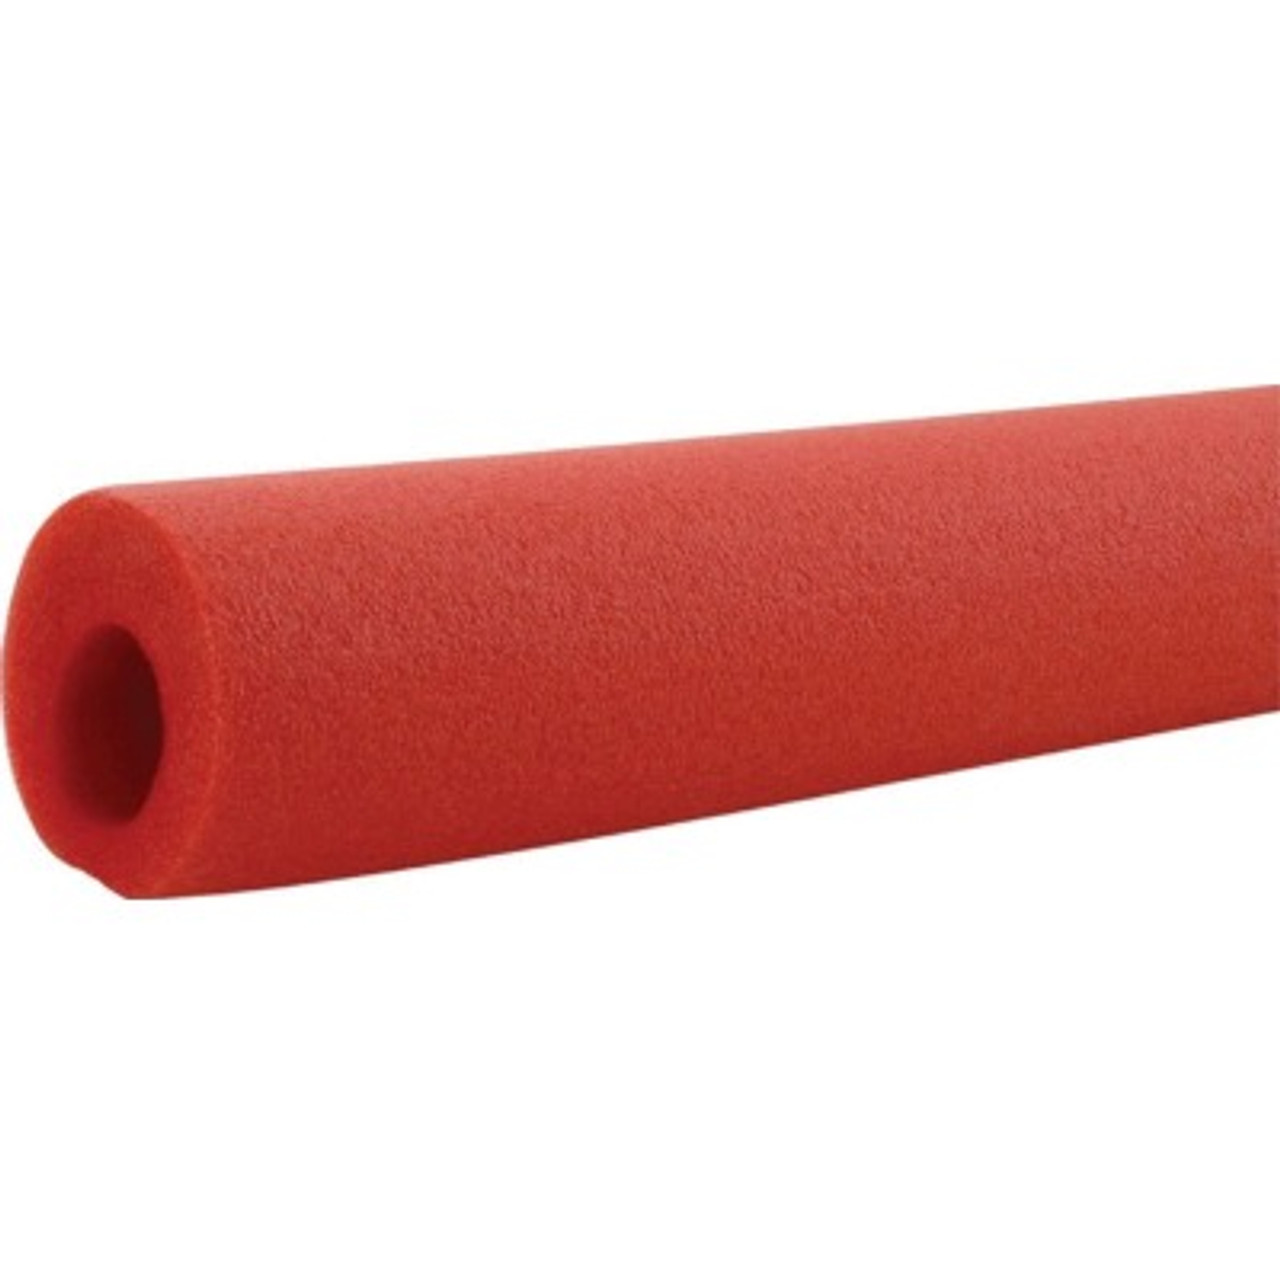 ALL14101, Roll Bar Padding, 36 in Long, Foam, Red, Each,